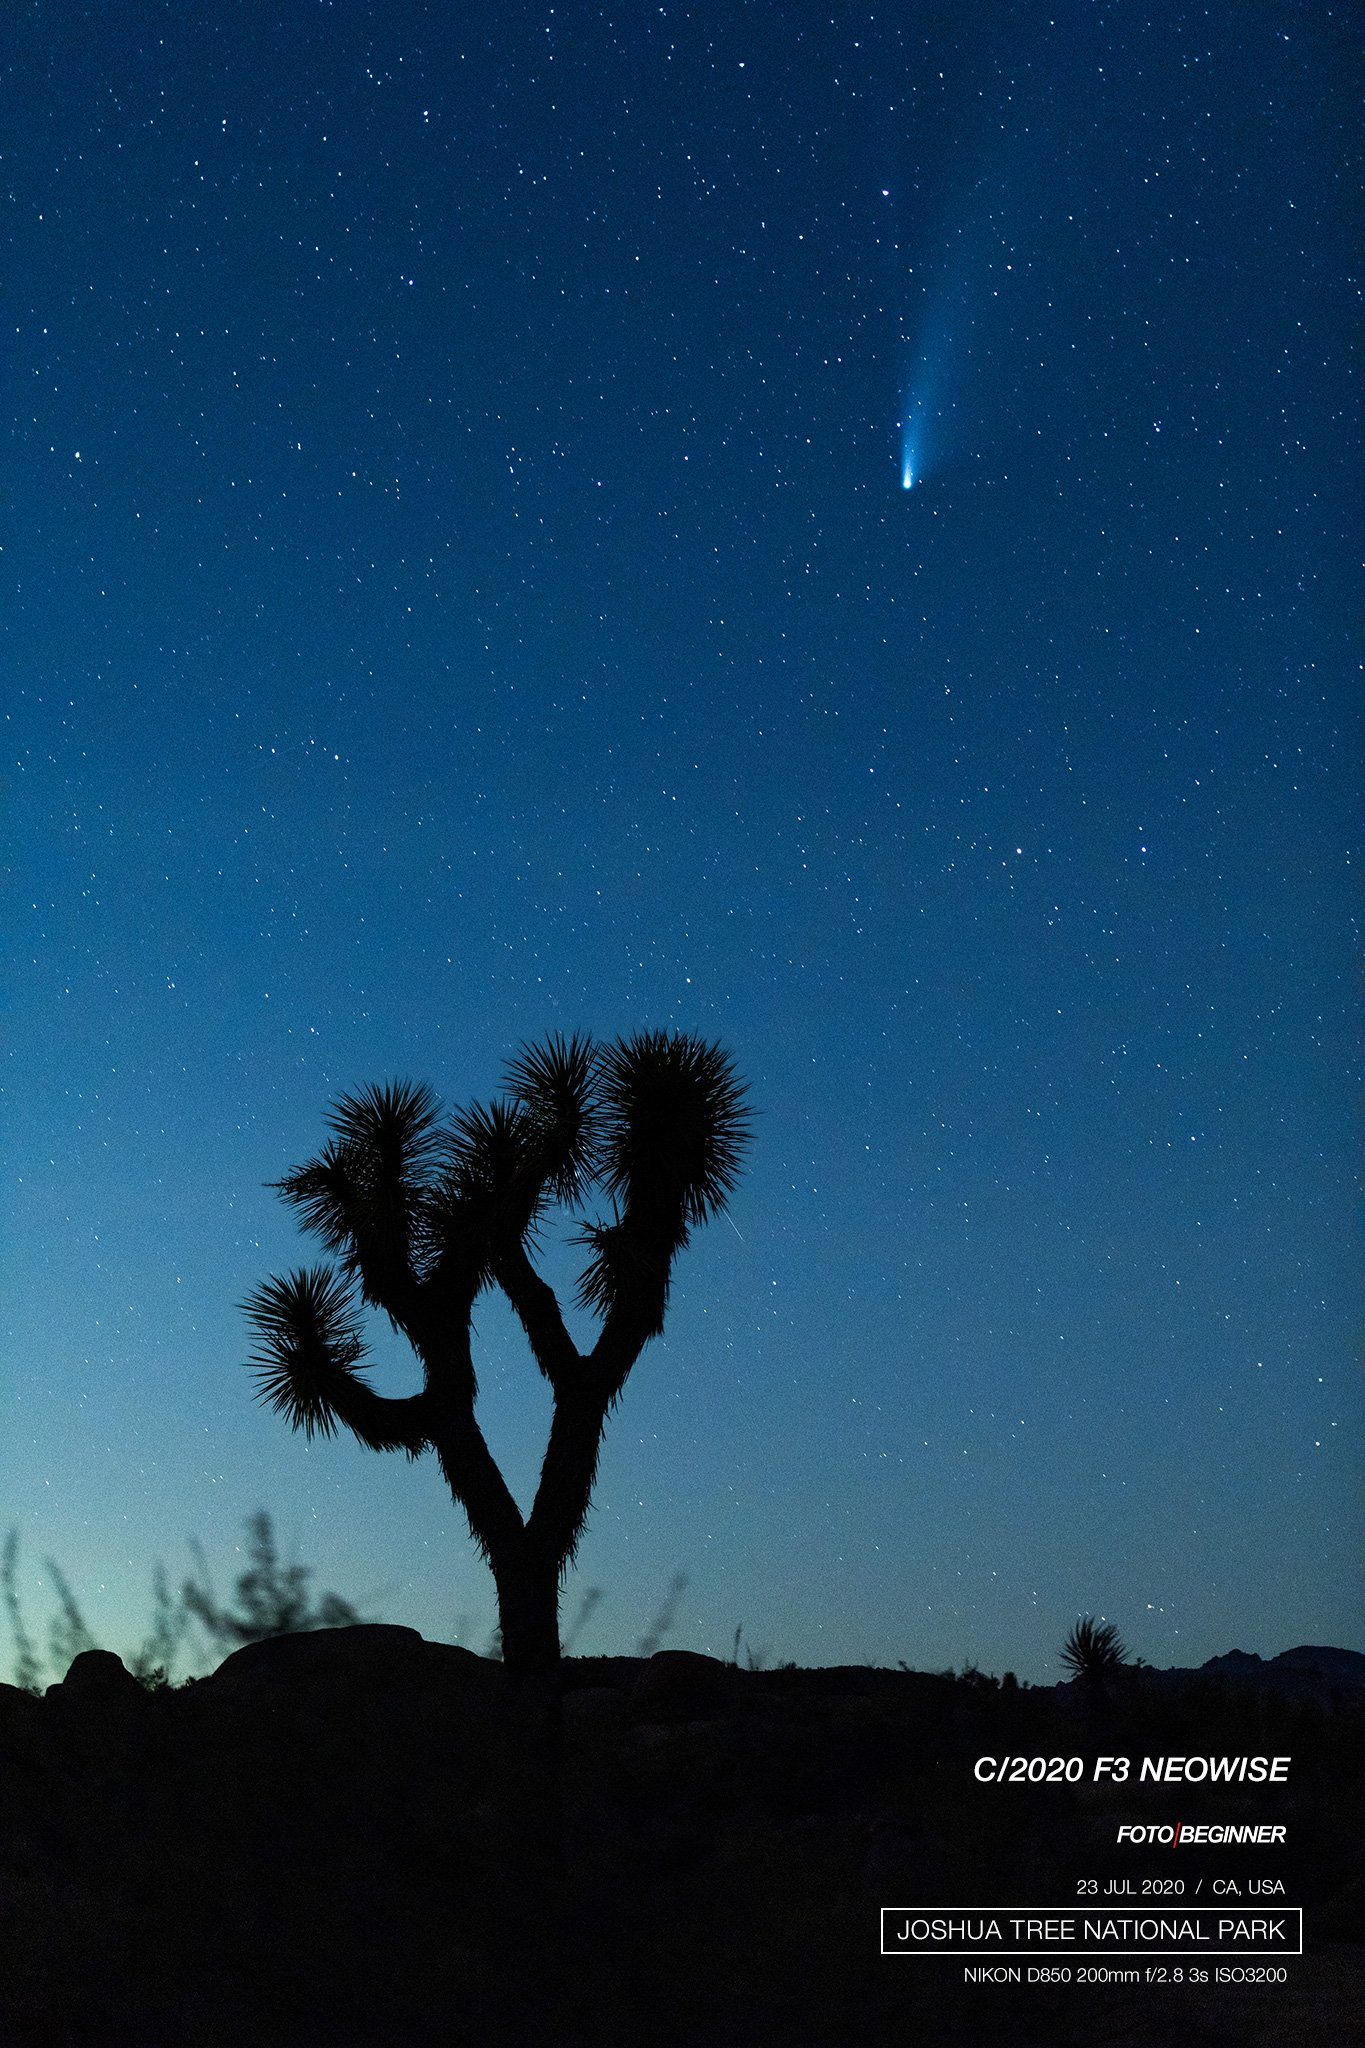 Joshua Tree with NEOWISE